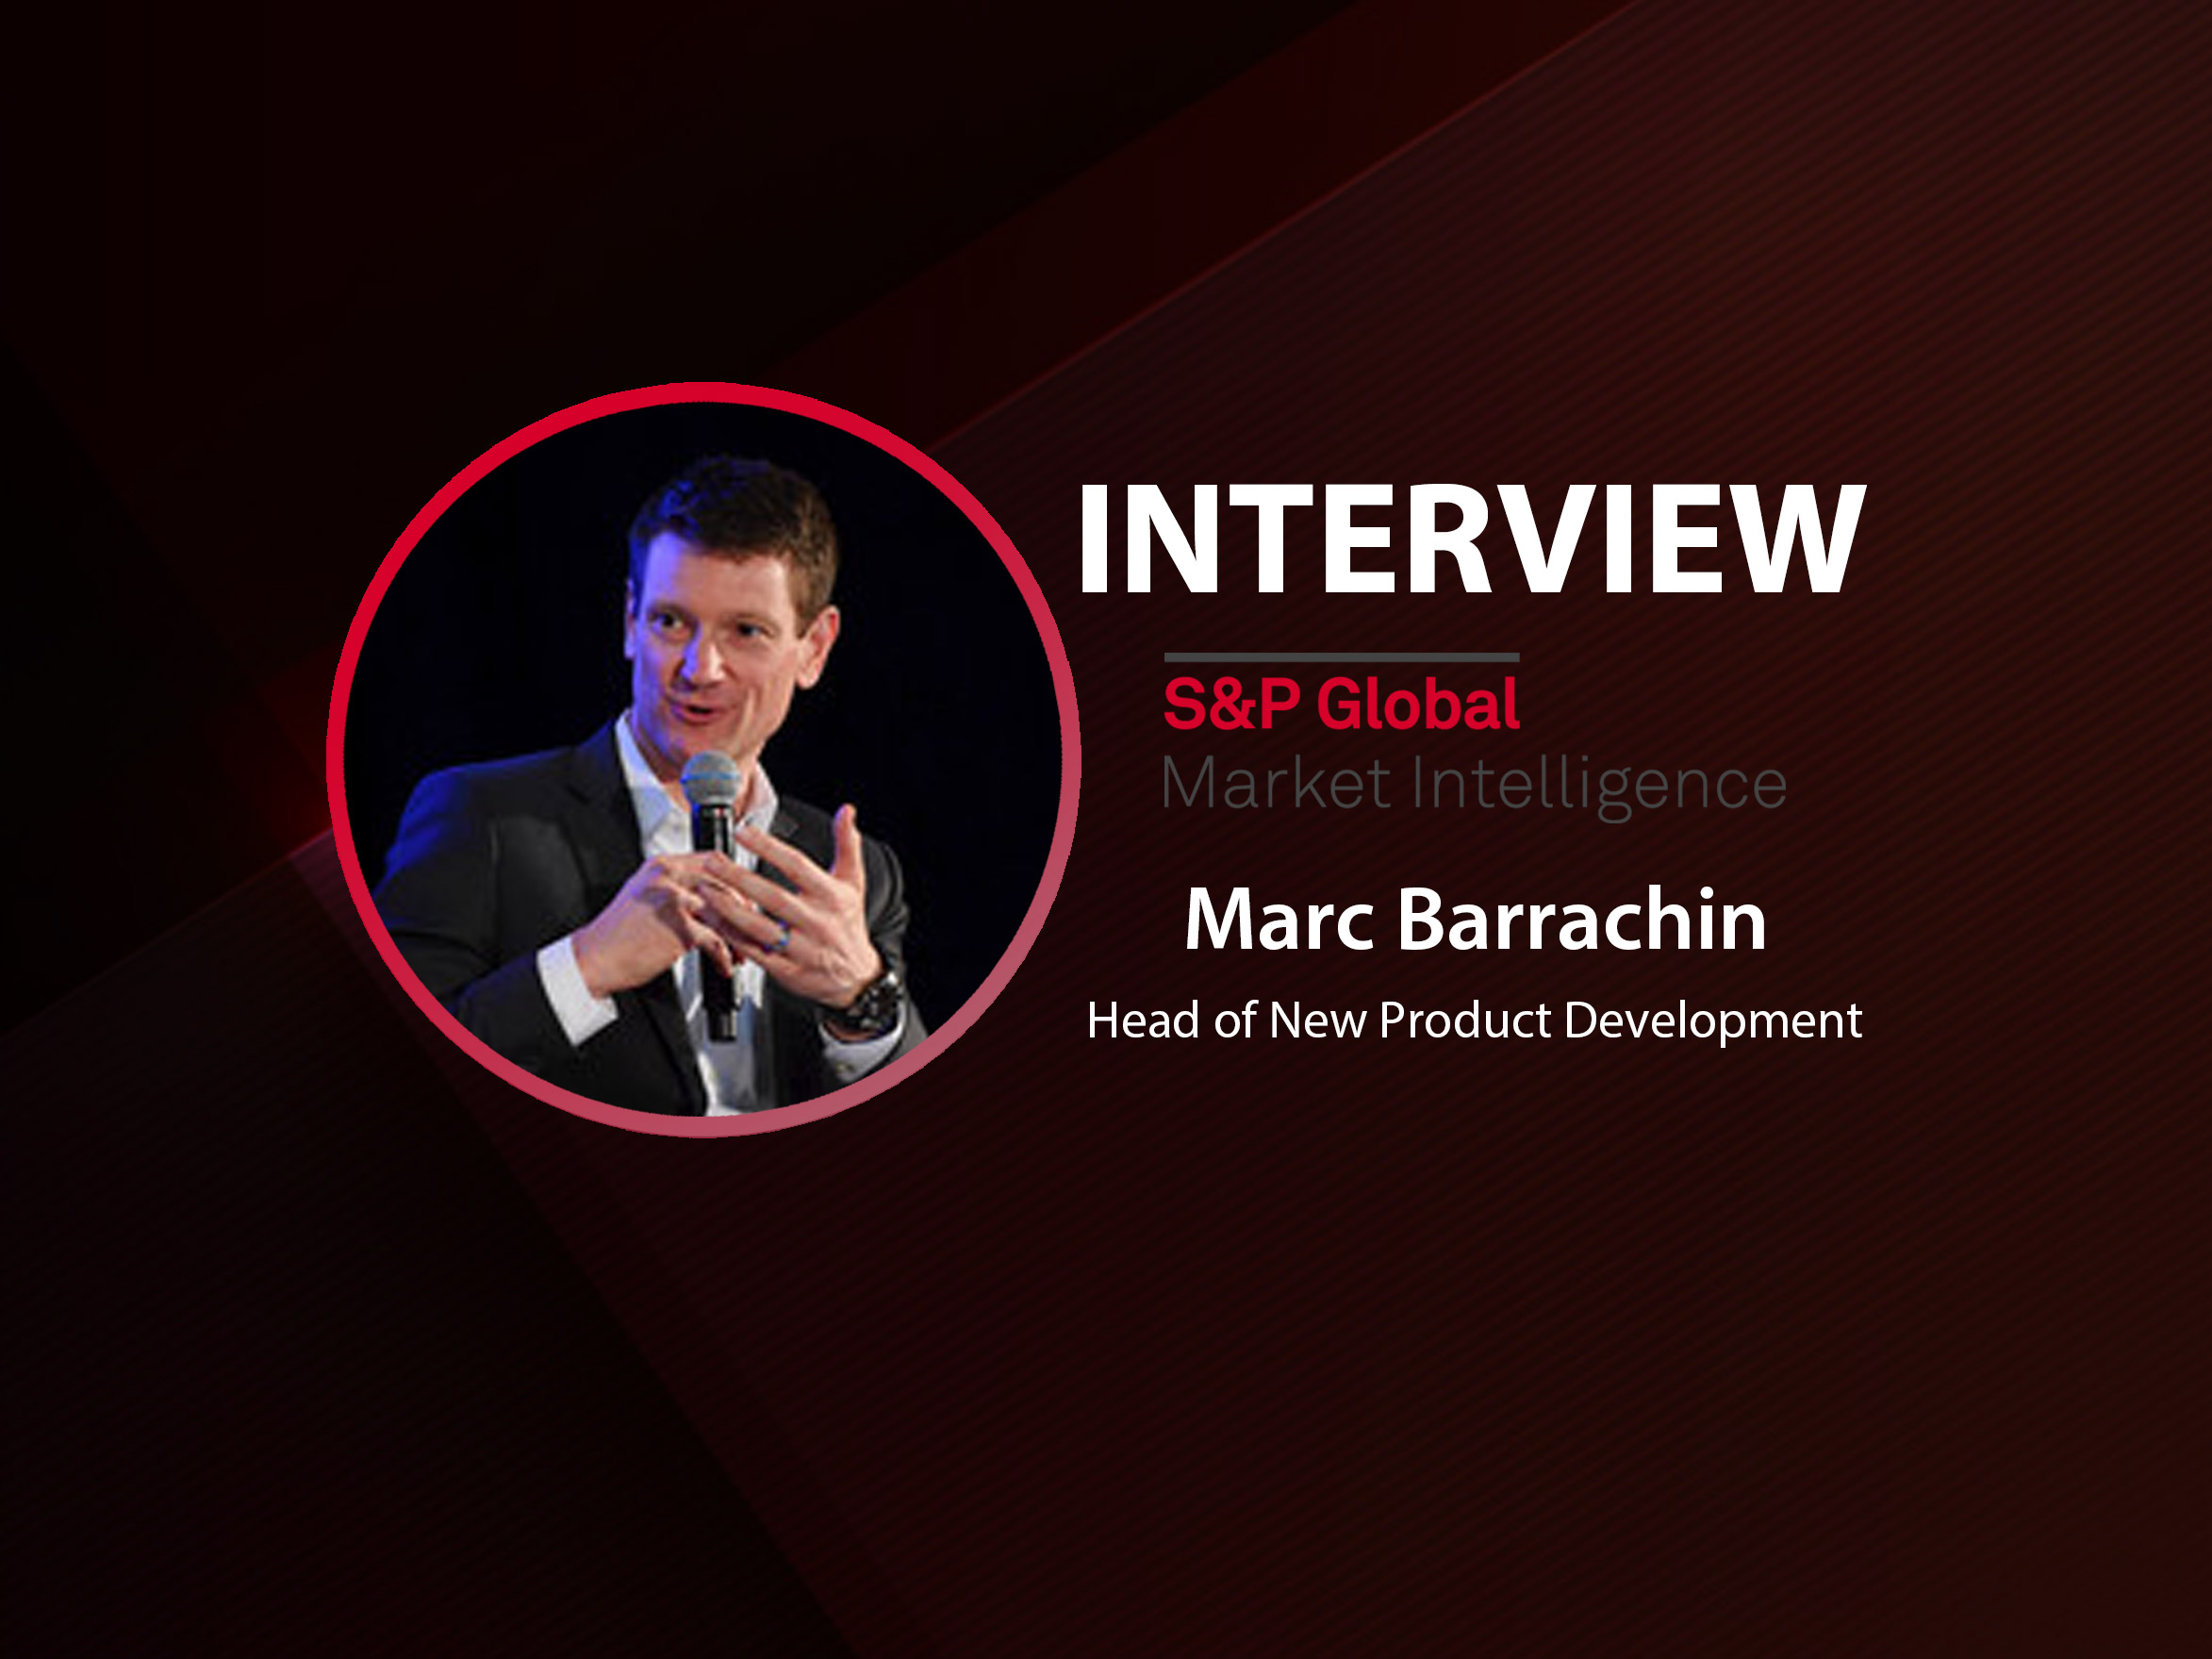 GlobalFintechSeries Interview with Marc Barrachin, Head of New Product Development S&P Global Market Intelligence